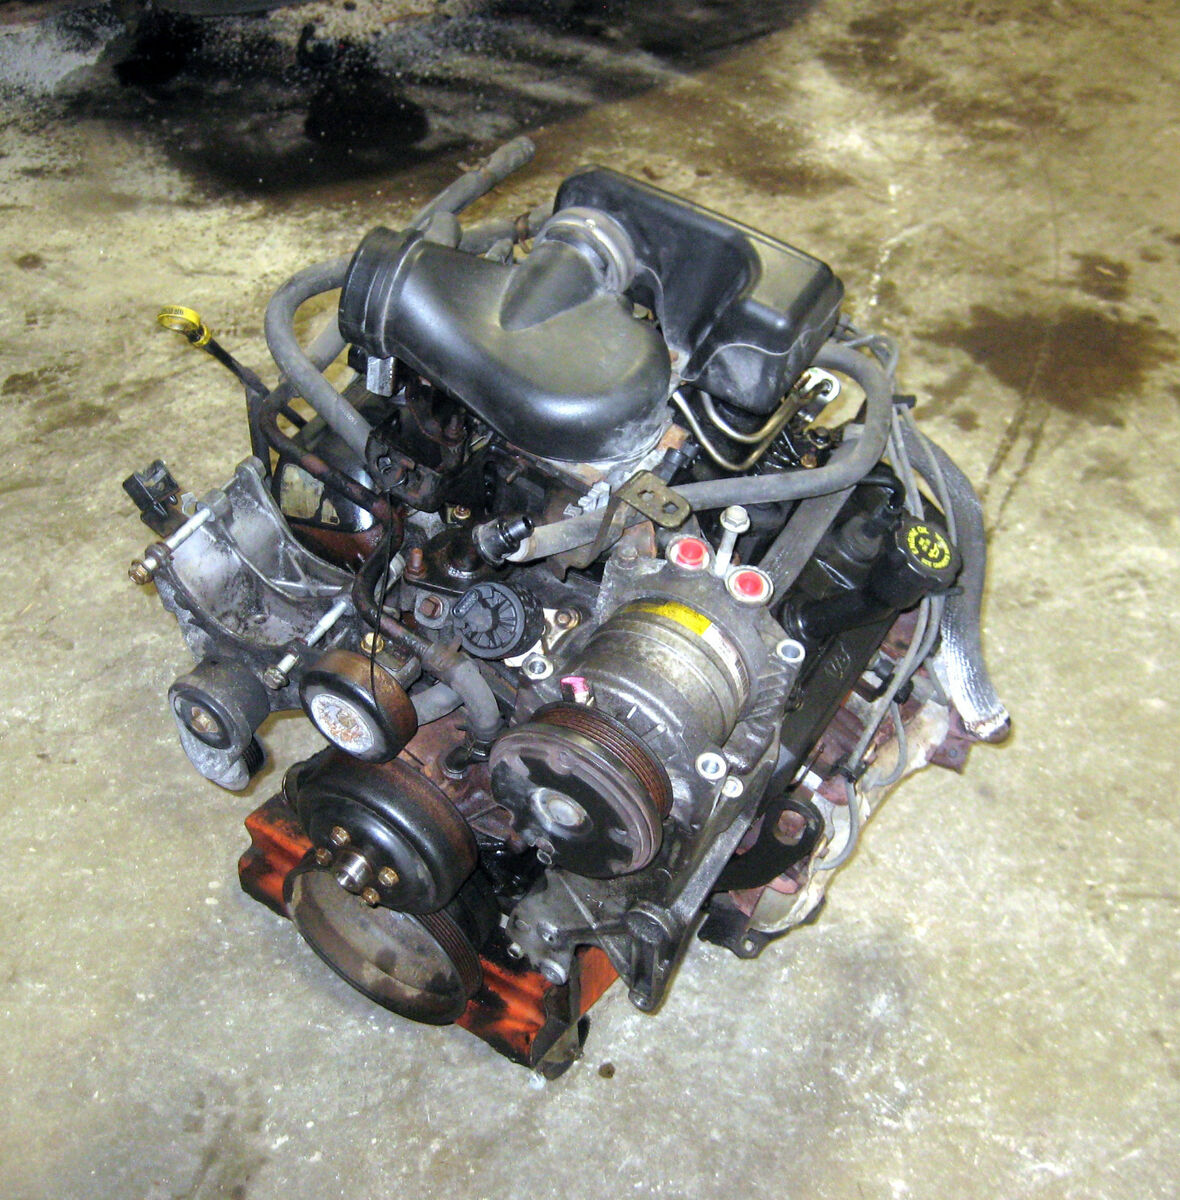 00 2000 Chevy Silverado GMC Sierra Astro Blazer S10 4 3 V6 Engine 197K w Video